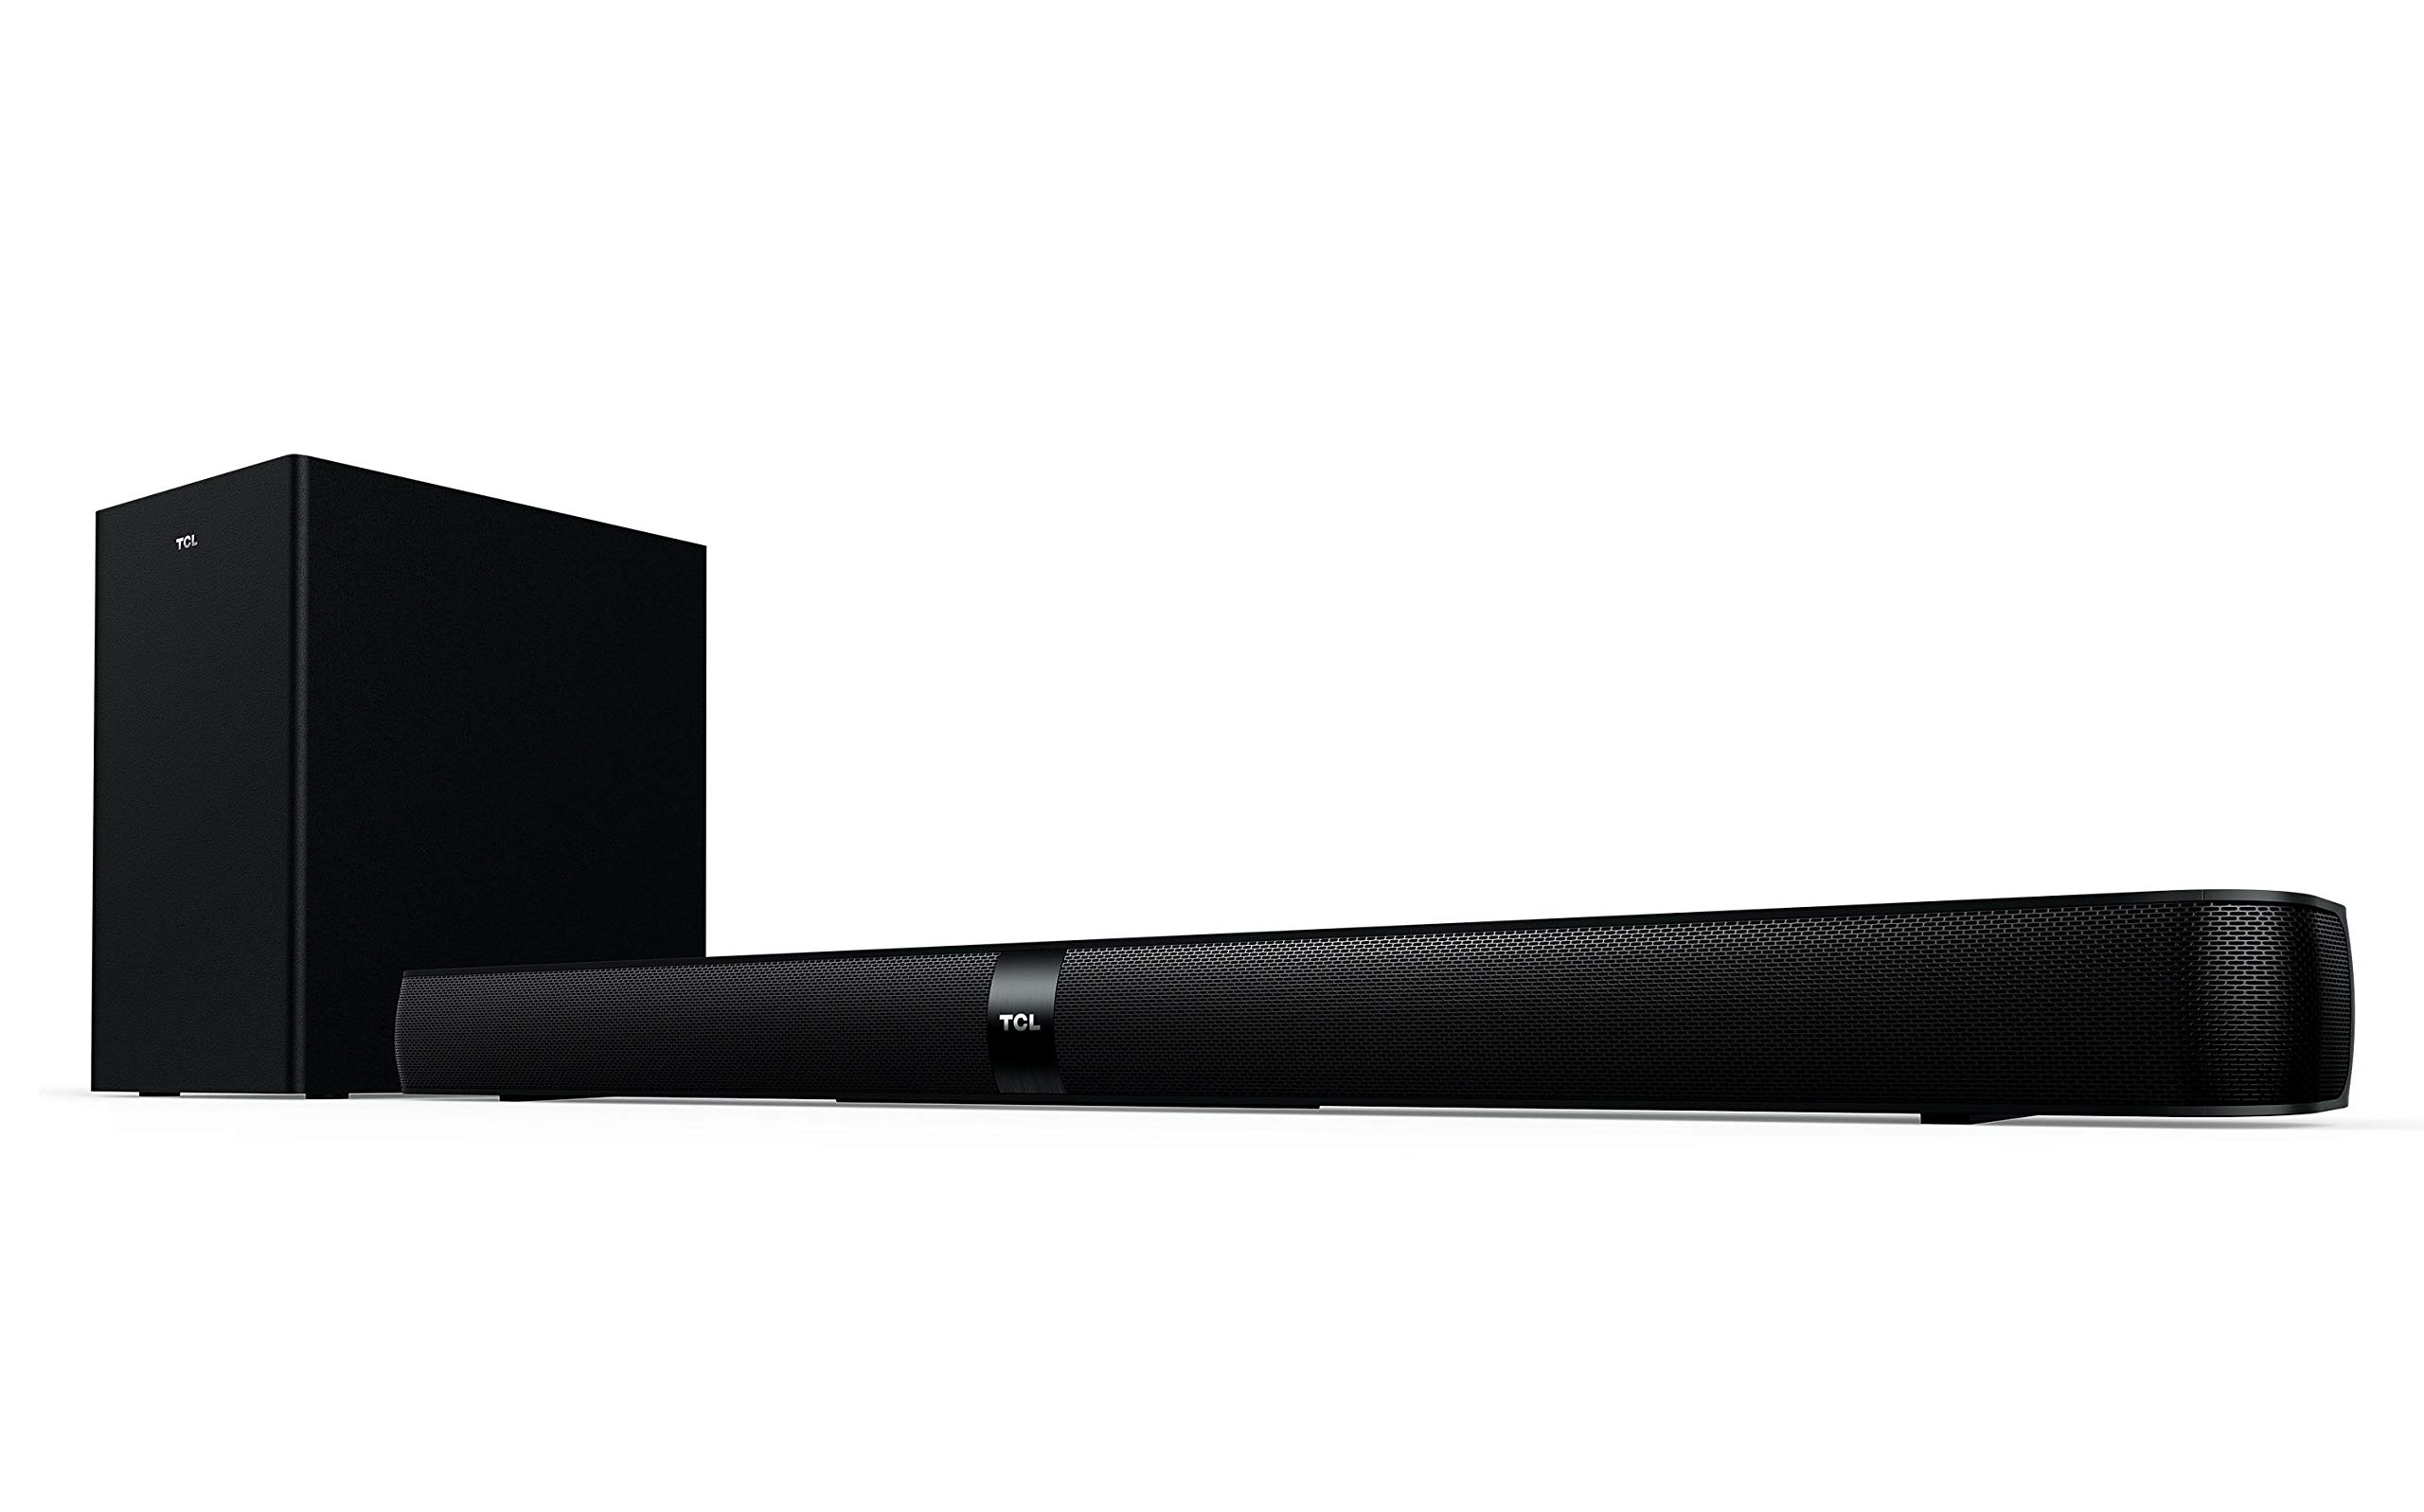 TCL Alto 7+ 2.1 Channel Home Theater Sound Bar with Wireless Subwoofer - TS7010, 36'', Black